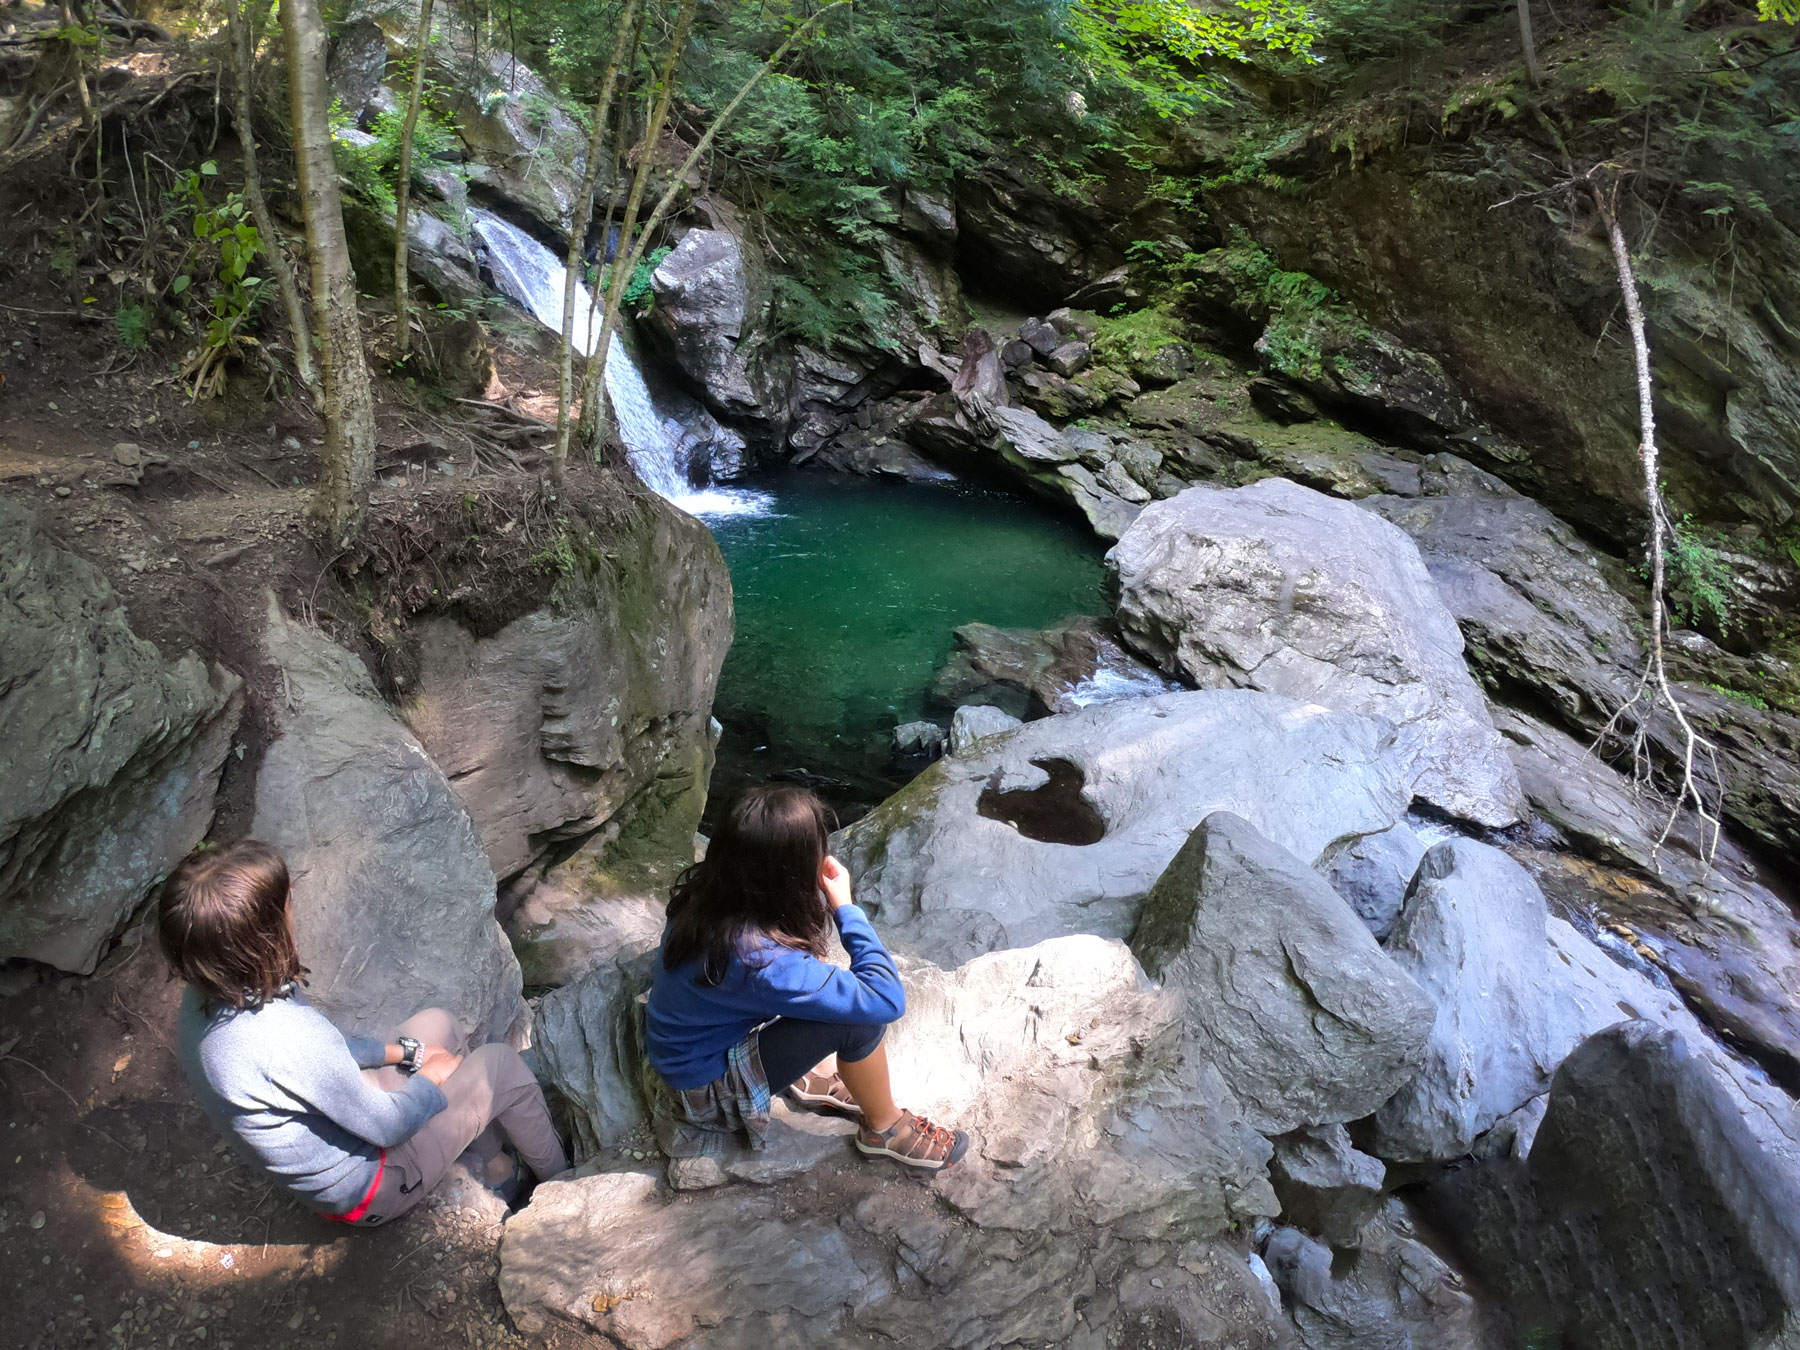 Two girls looking at the green pool at Bingham Falls, Vermont